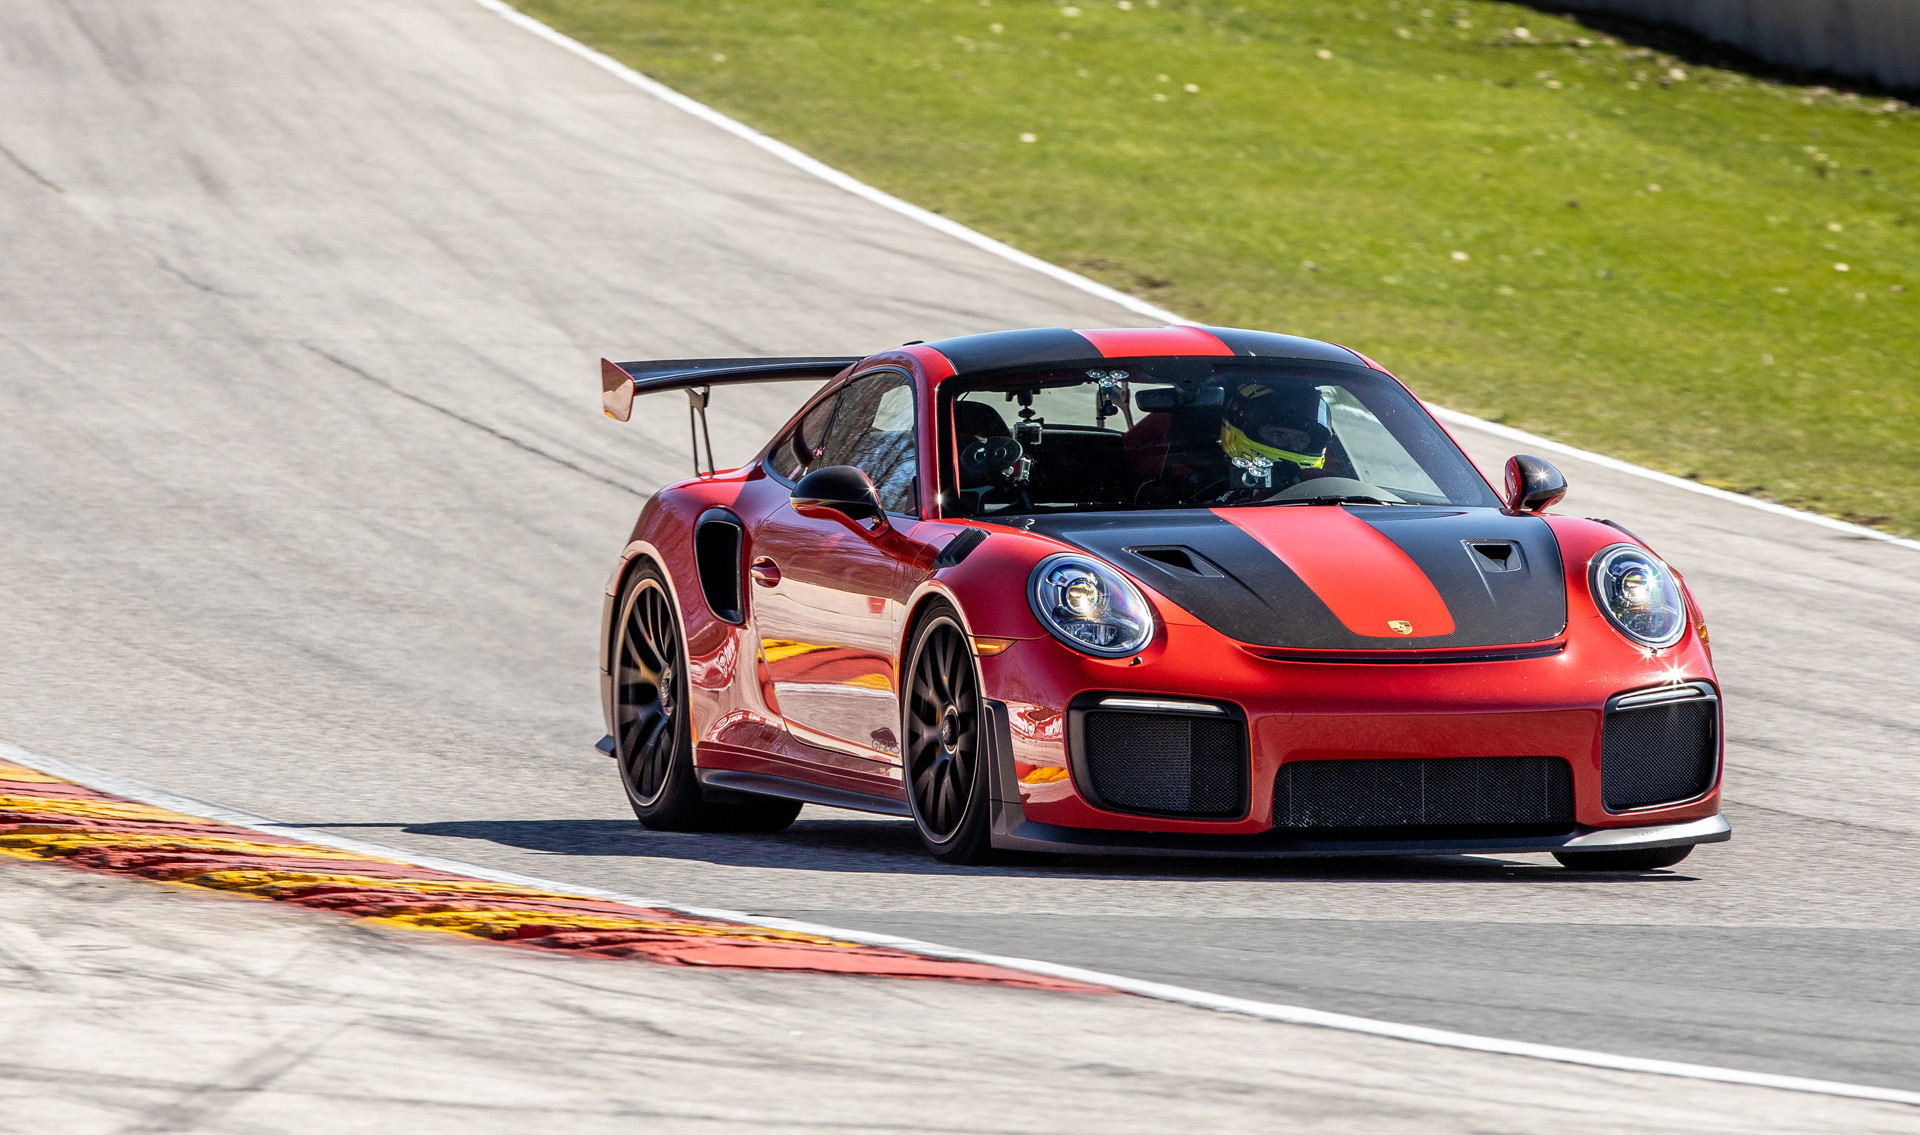 2018 Porsche 911 Gt2 Rs Is Now The Fastest Production Car At Road